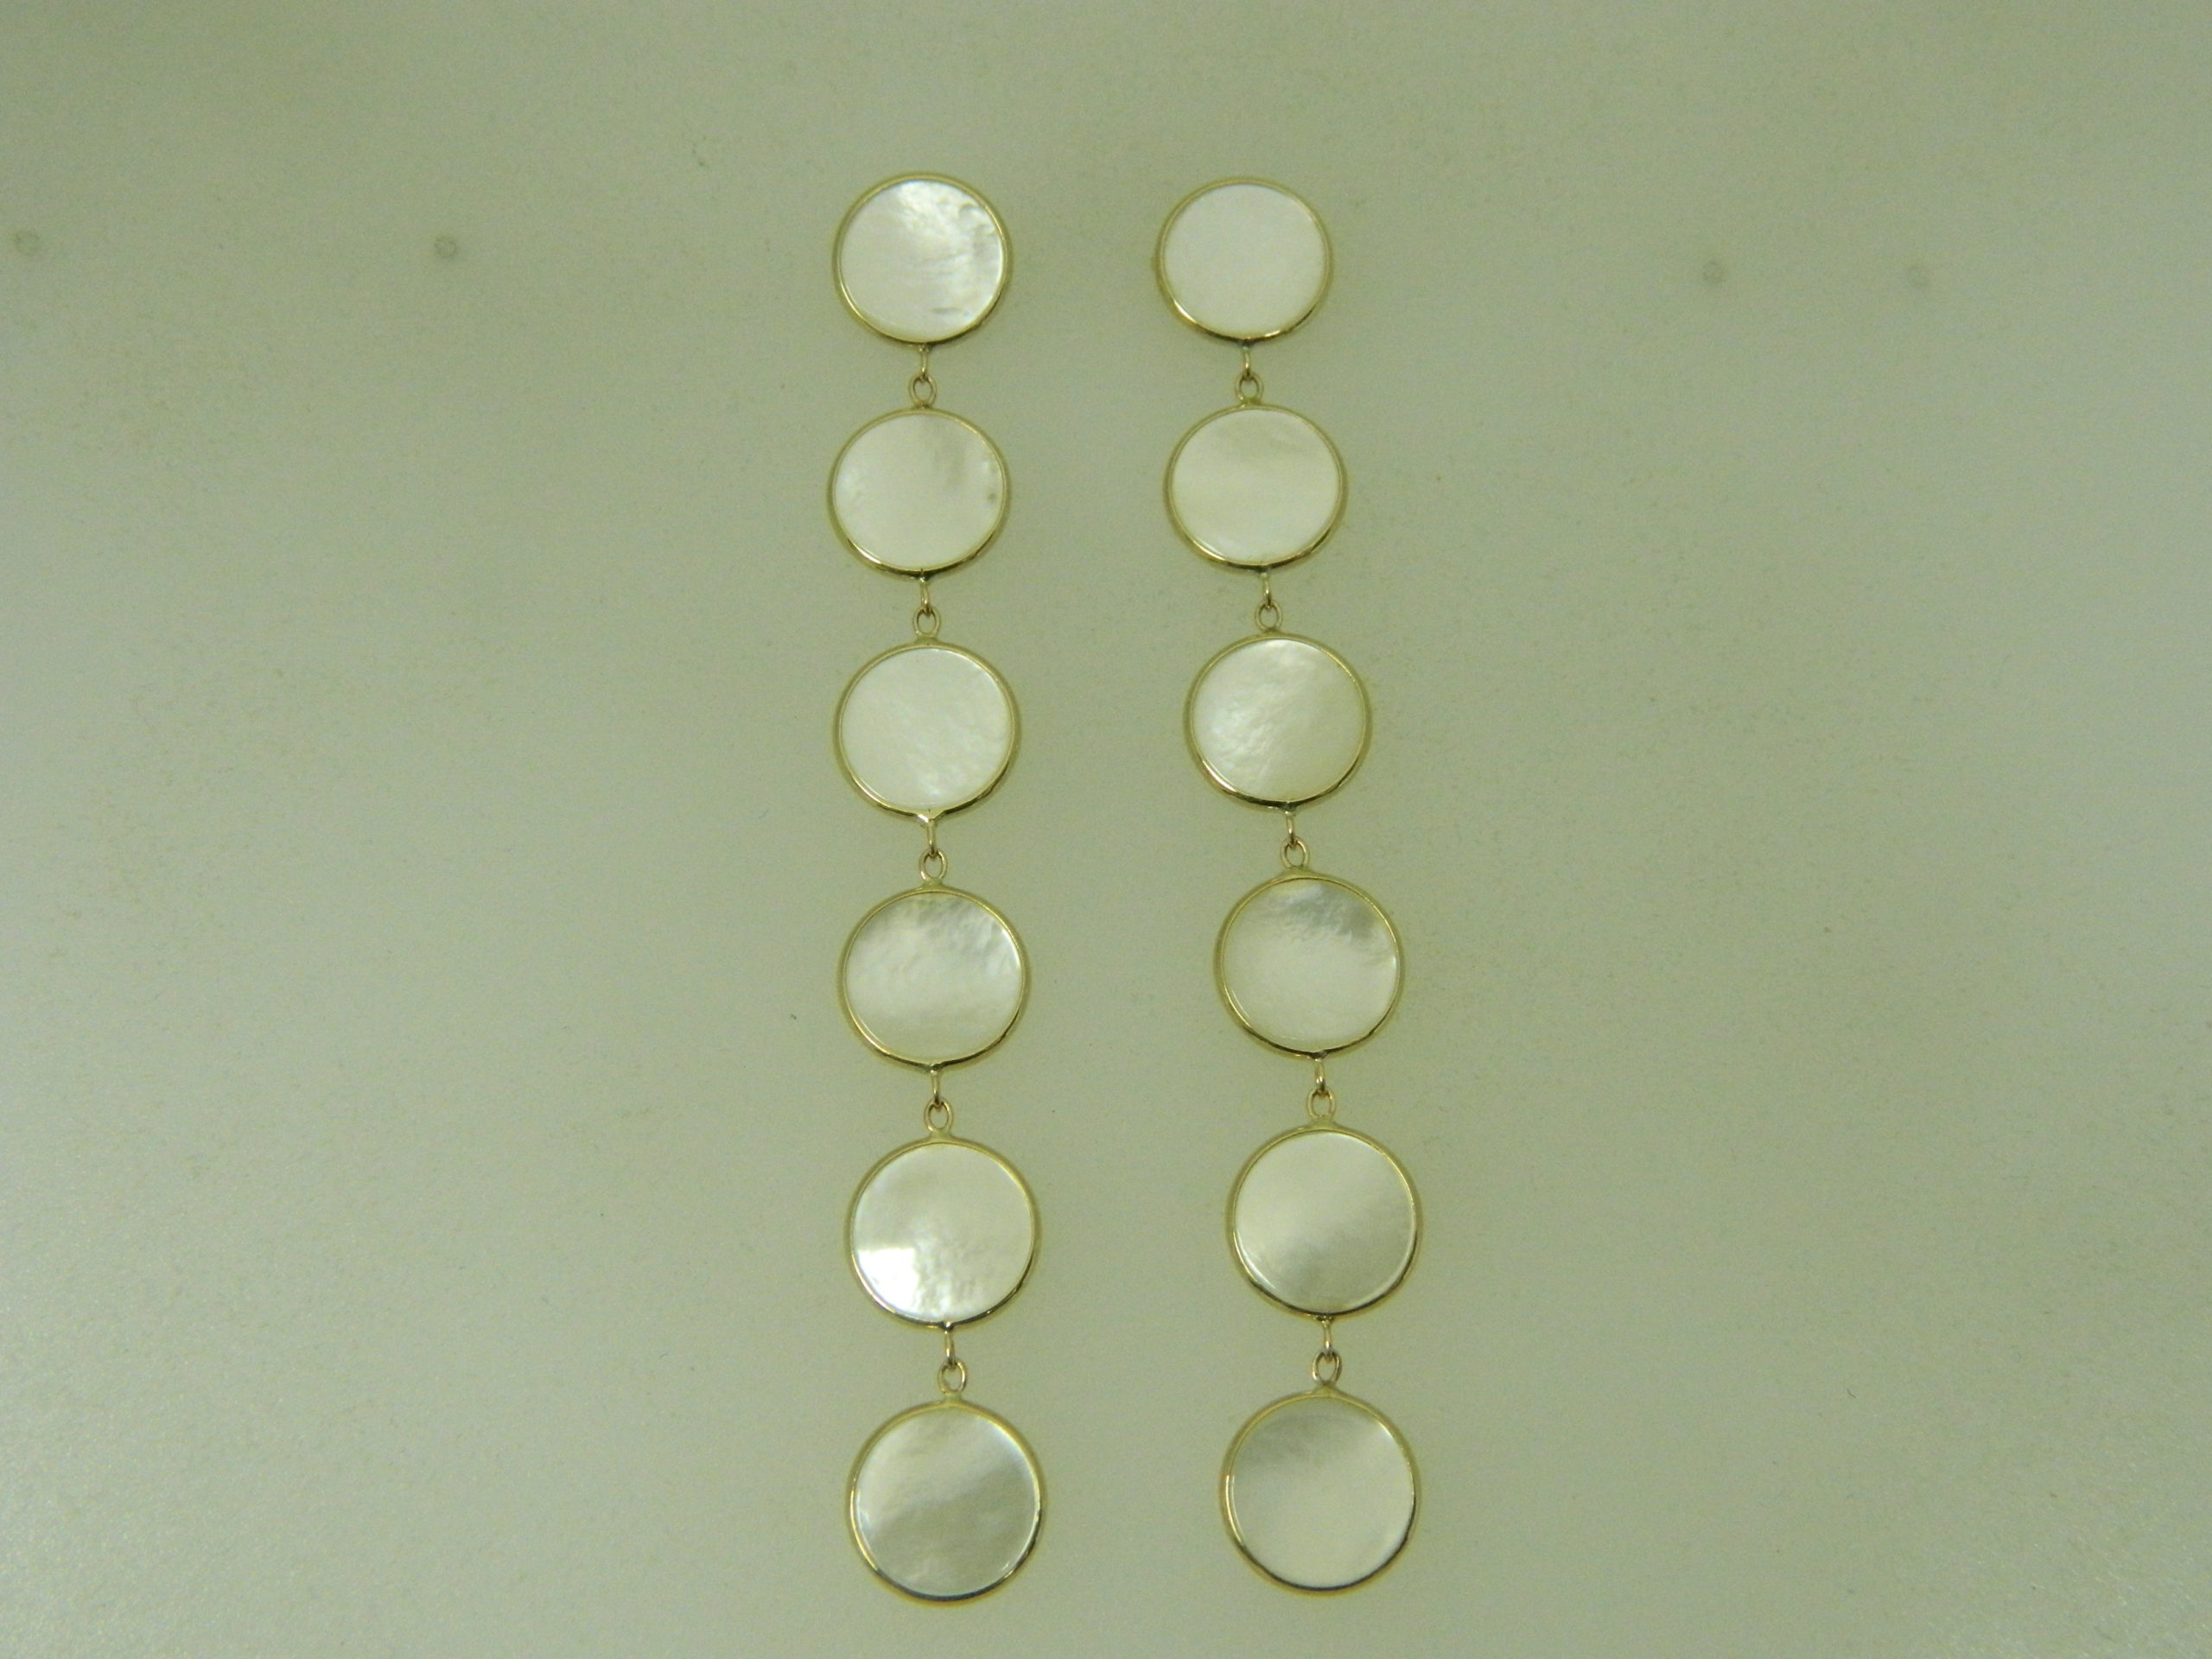 14 Karat Yellow Gold 10MM Mother of Pearl Tailored Earrings